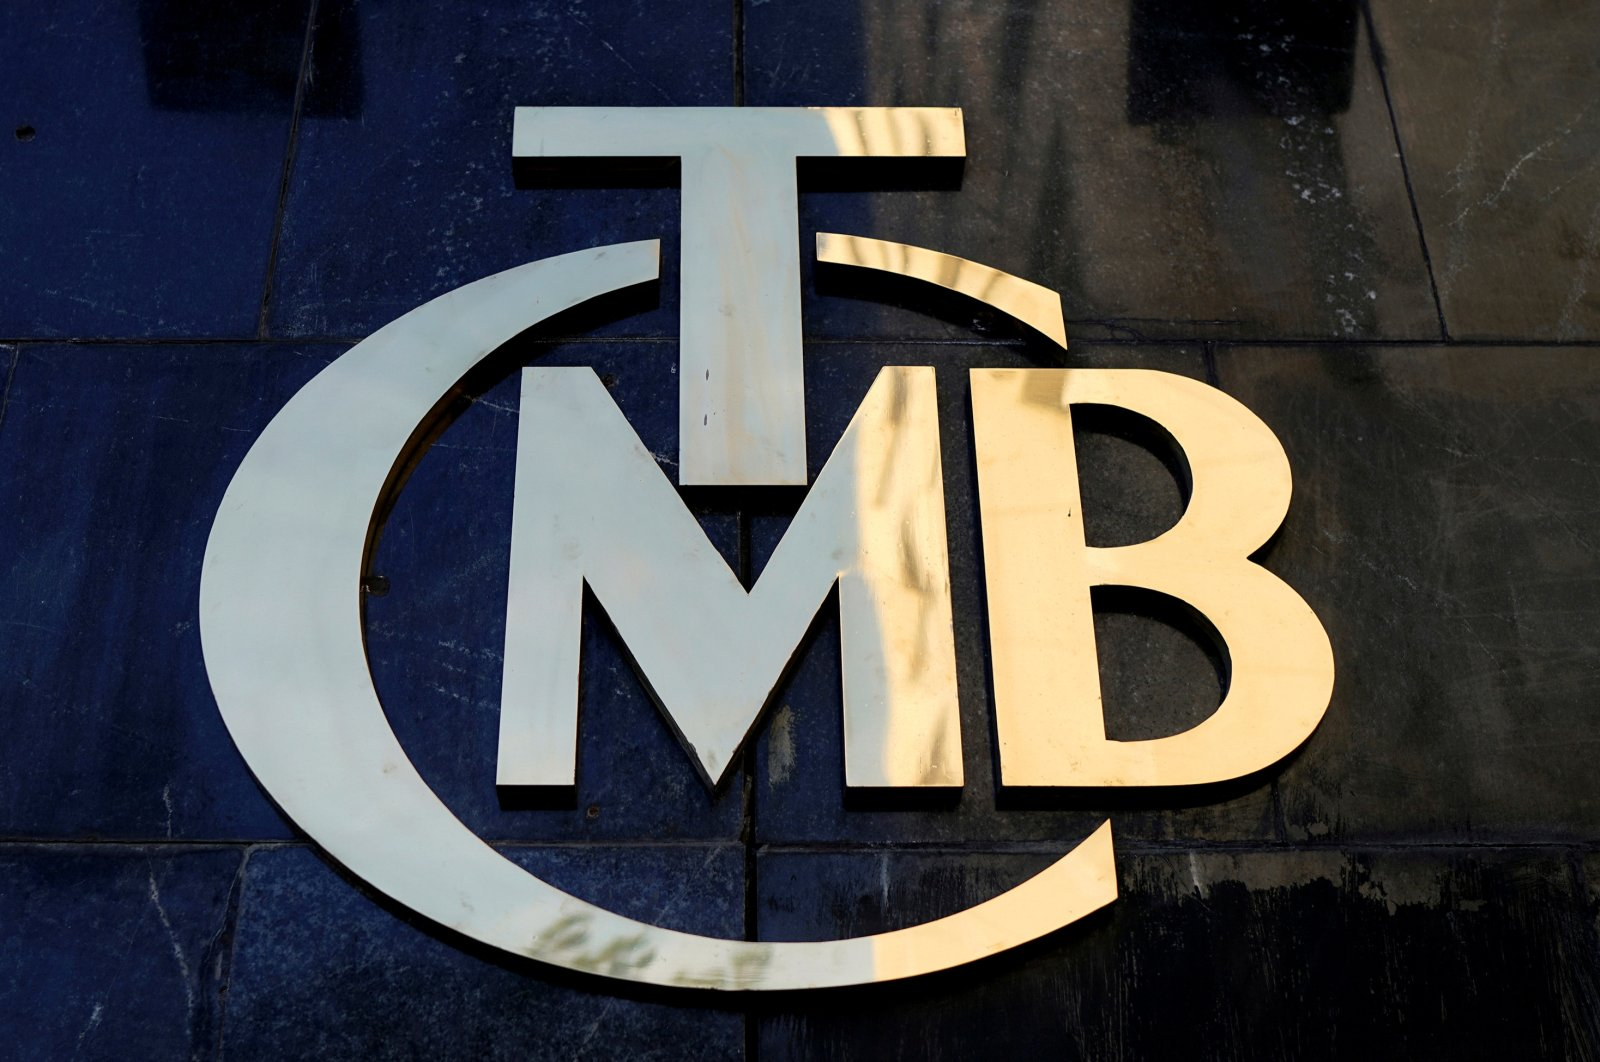 A logo of the Central Bank of the Republic of Turkey (CBRT) is pictured at the entrance of the bank's headquarters in Ankara, Turkey, April 19, 2015. (Reuters Photo)